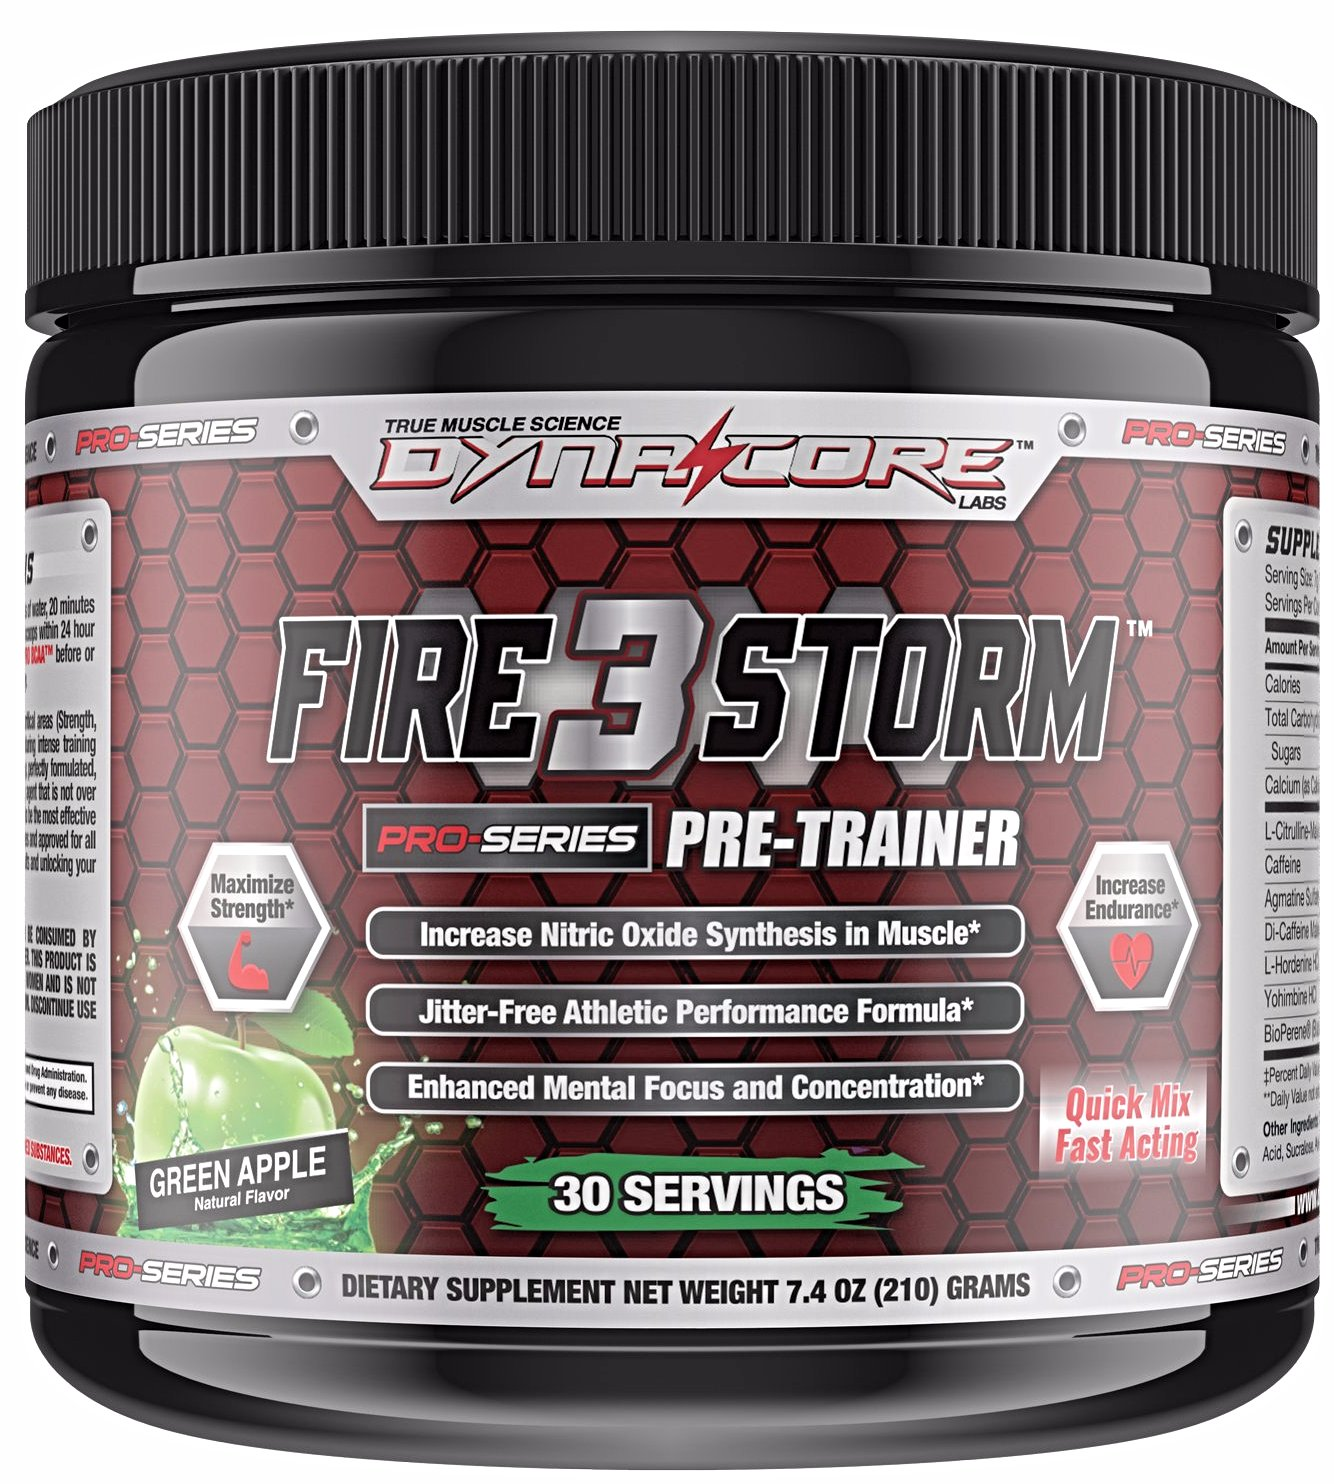 Firestorm 3 Pre-Training Powder - Dyna-Core labs- Green Apple